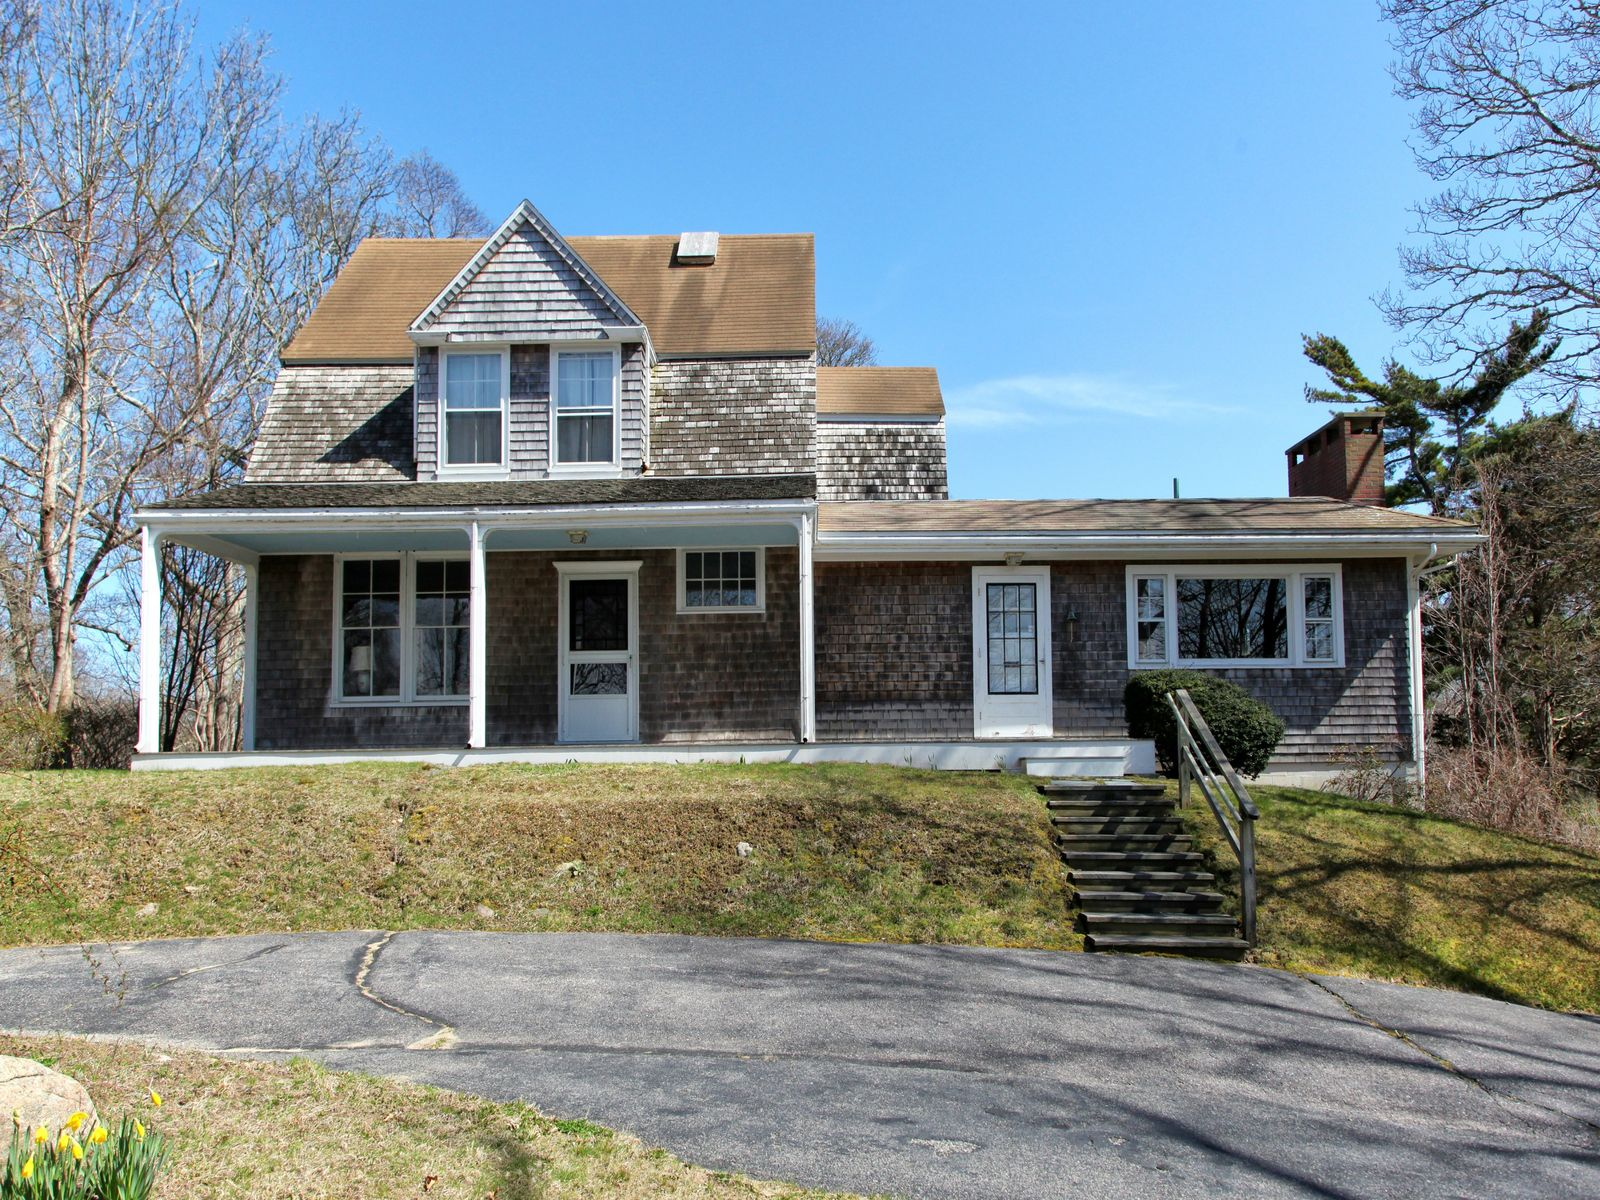 Unique Property with Buzzards Bay Views